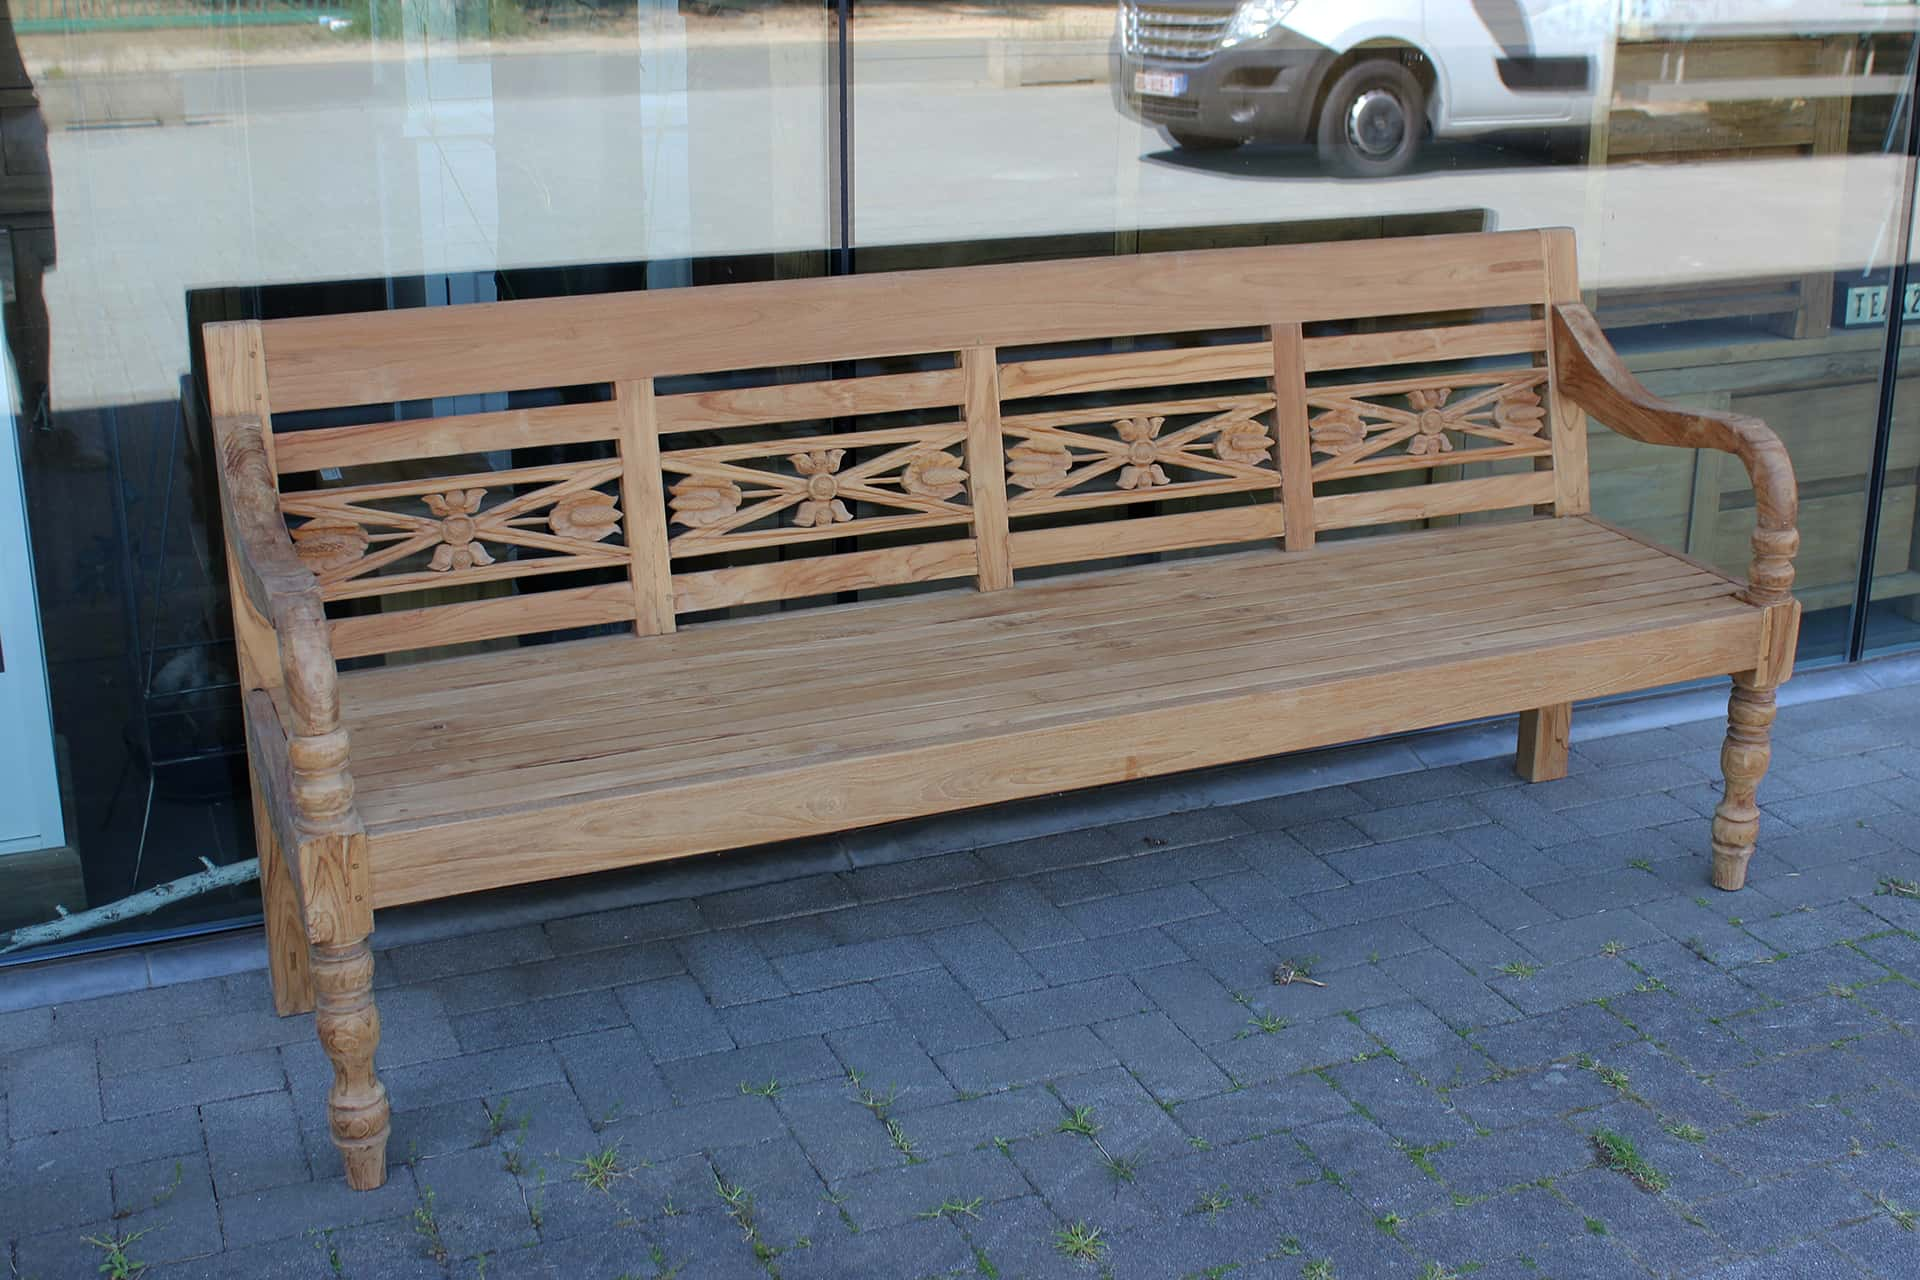 Bangku Raya O190 Old | luxury old station bench teak, quality from Indonesia. Garden bench old teak, teak garden benches & station benches - TEAK2.